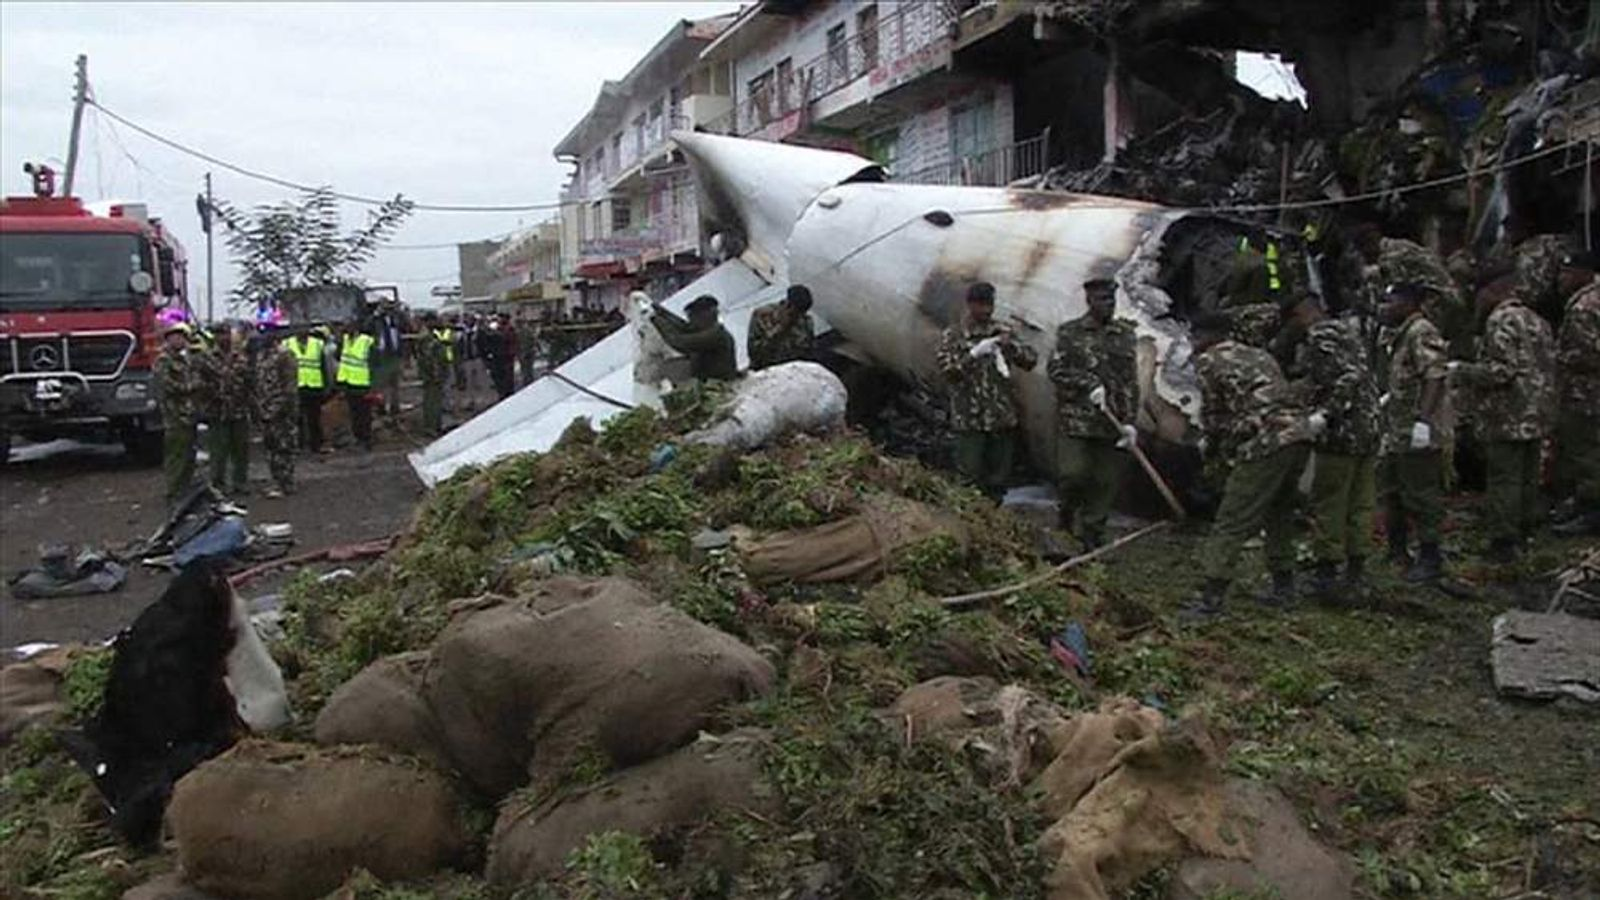 Scene of Nairobi, Kenya plane crash